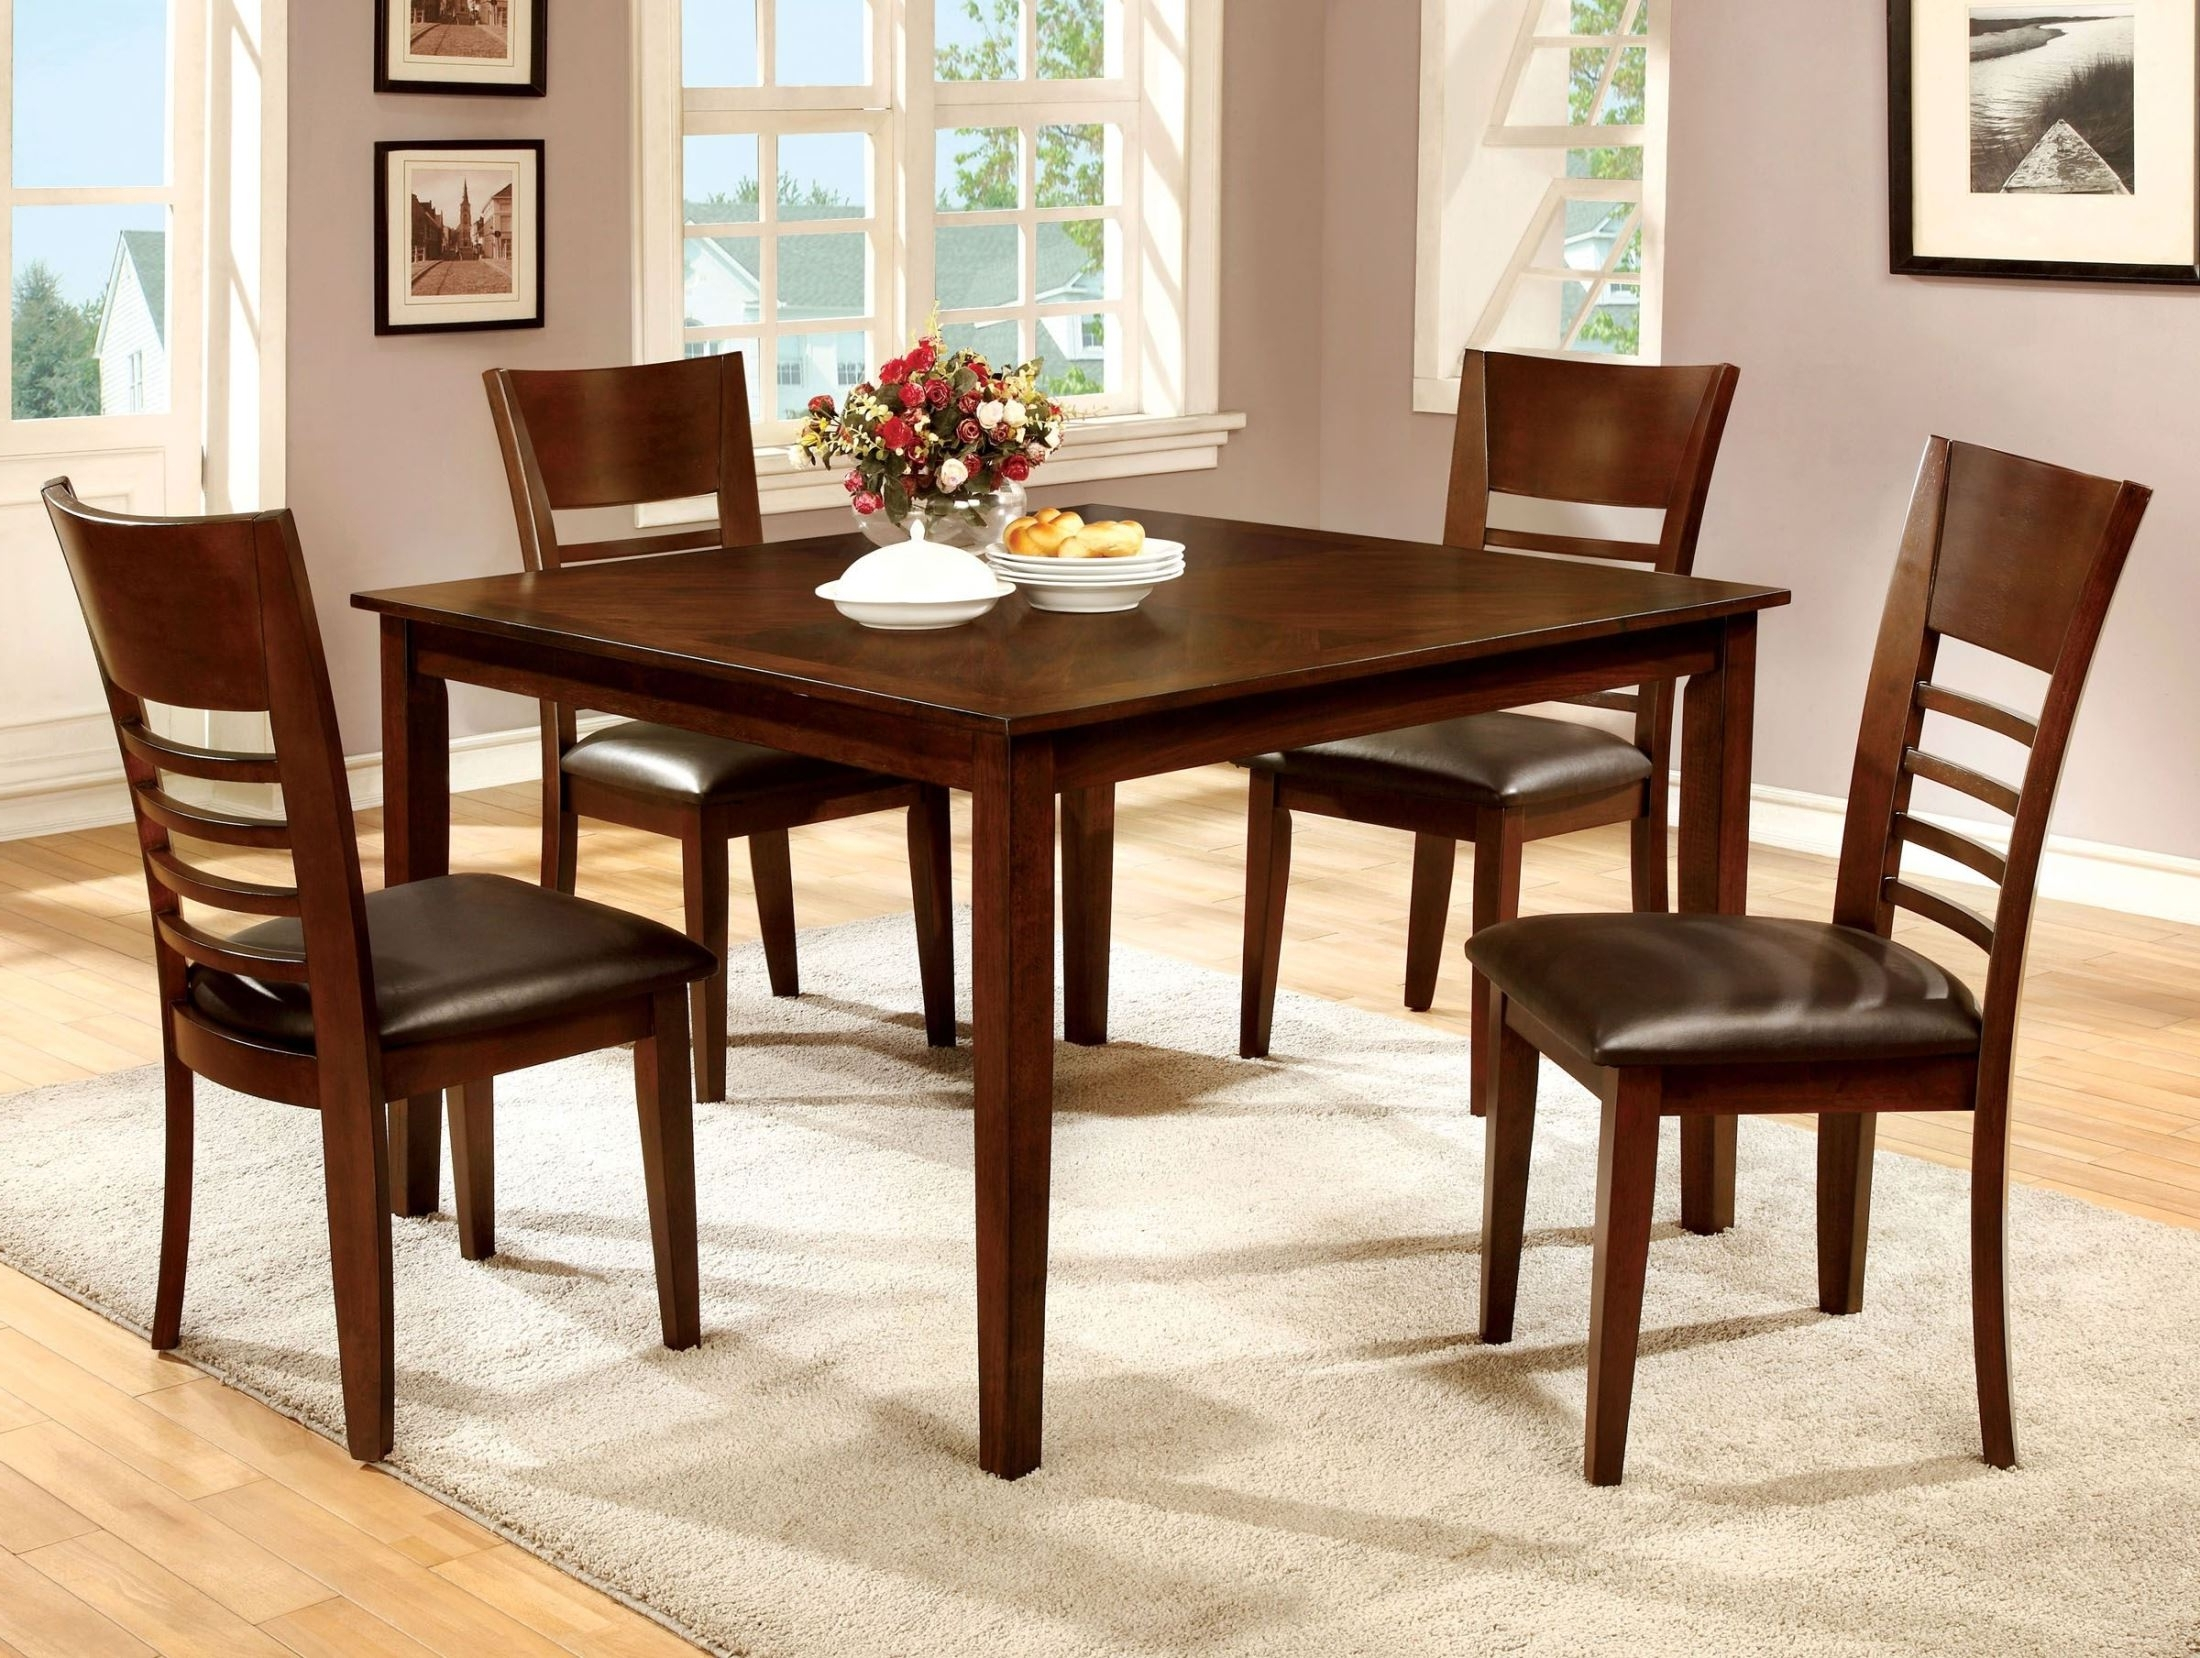 Best And Newest Furniture Of America Hillsview I Brown Cherry Extendable Dining For Extendable Dining Table Sets (View 2 of 25)